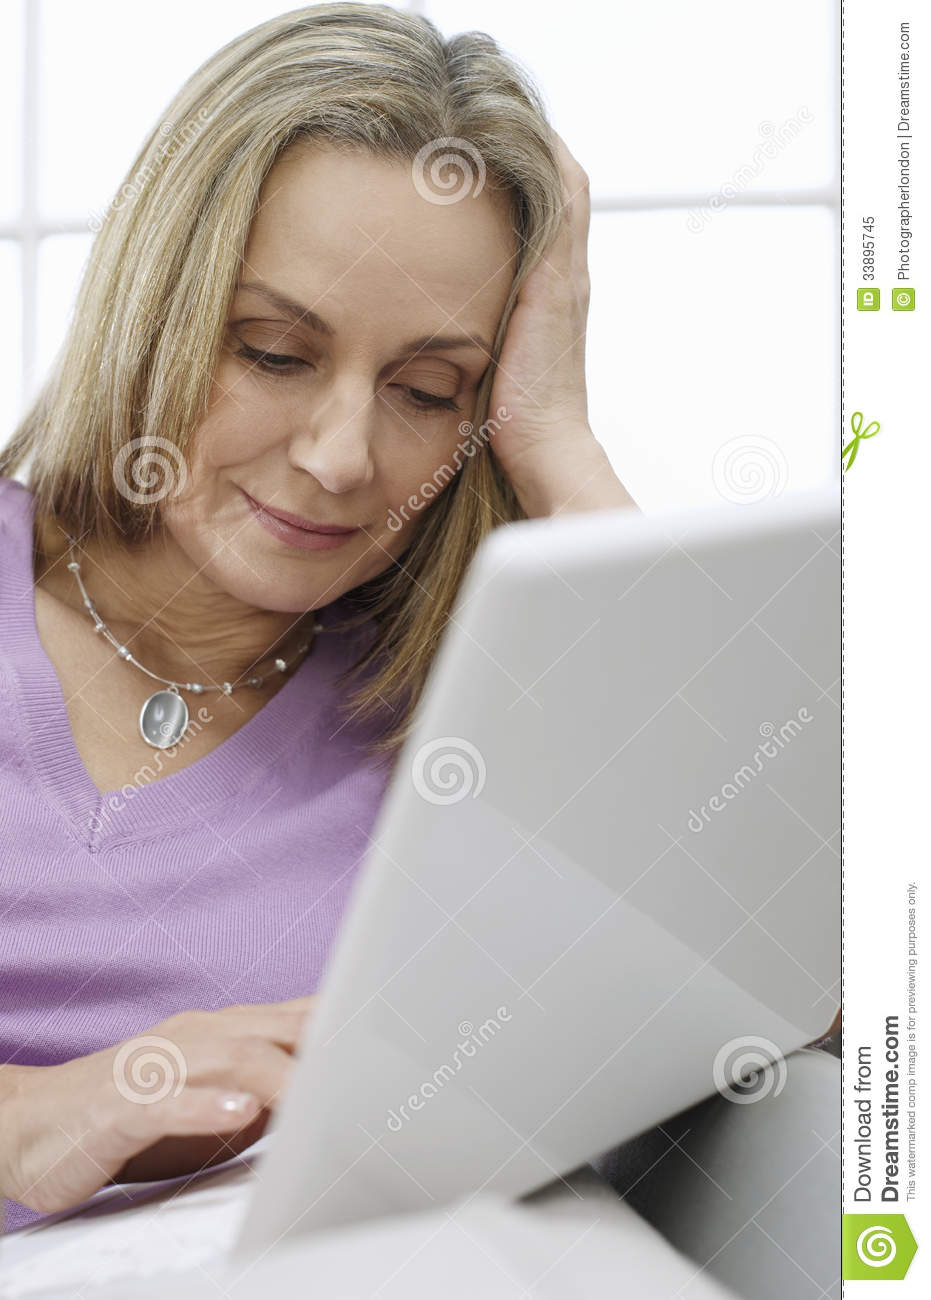 dating websites for middle aged fat women Most notably, the women are fatter and have more mental illnesses a new meetup that started dating website for middle-aged fat women in september is barcelona world singles.